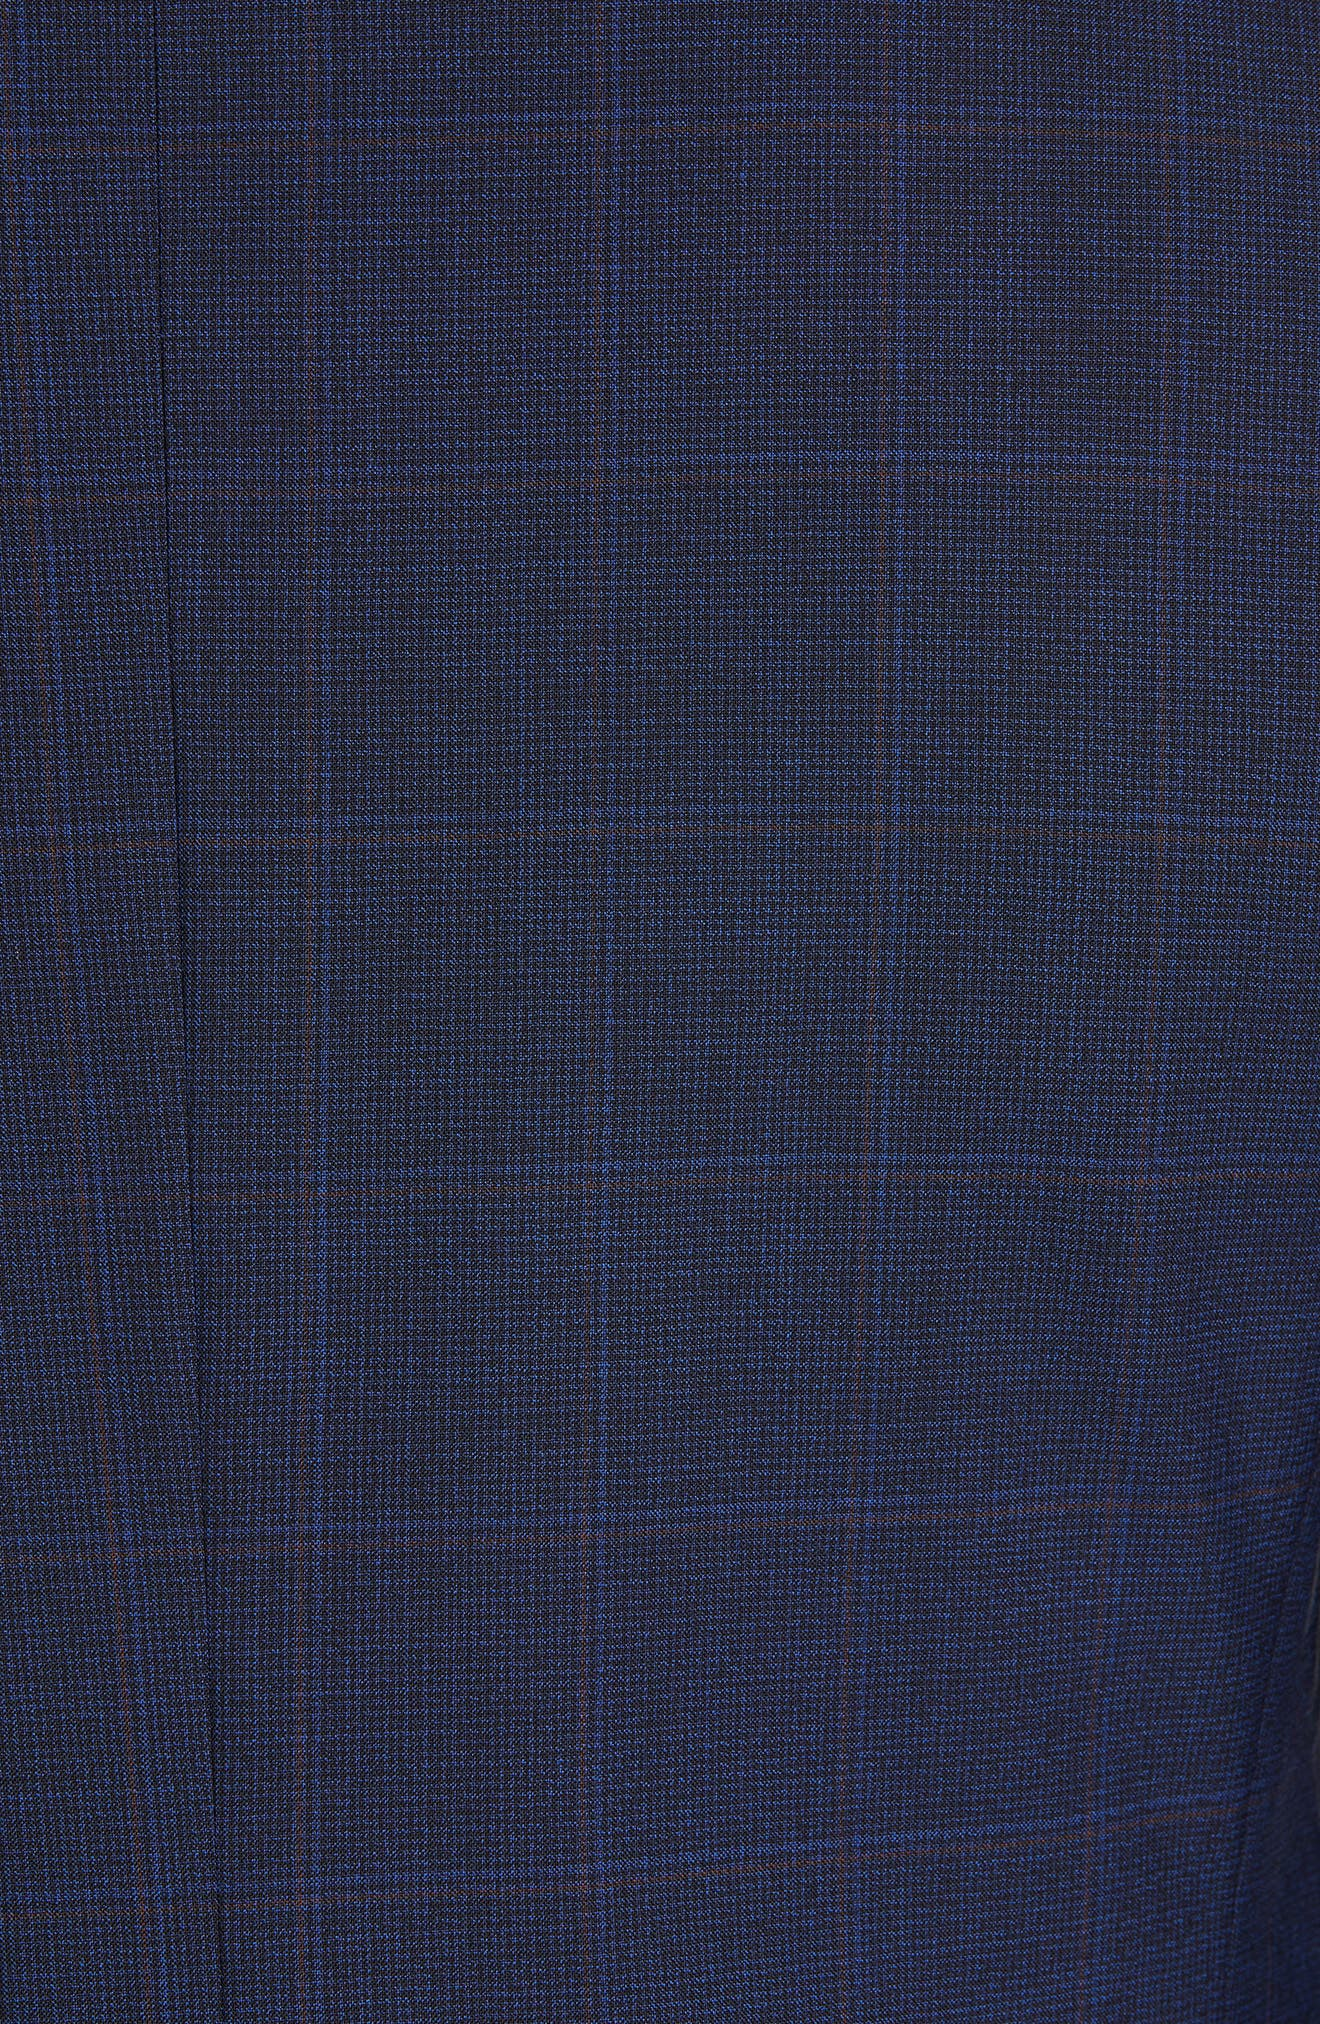 CANALI, Siena Soft Classic Fit Plaid Wool Suit, Alternate thumbnail 7, color, NAVY